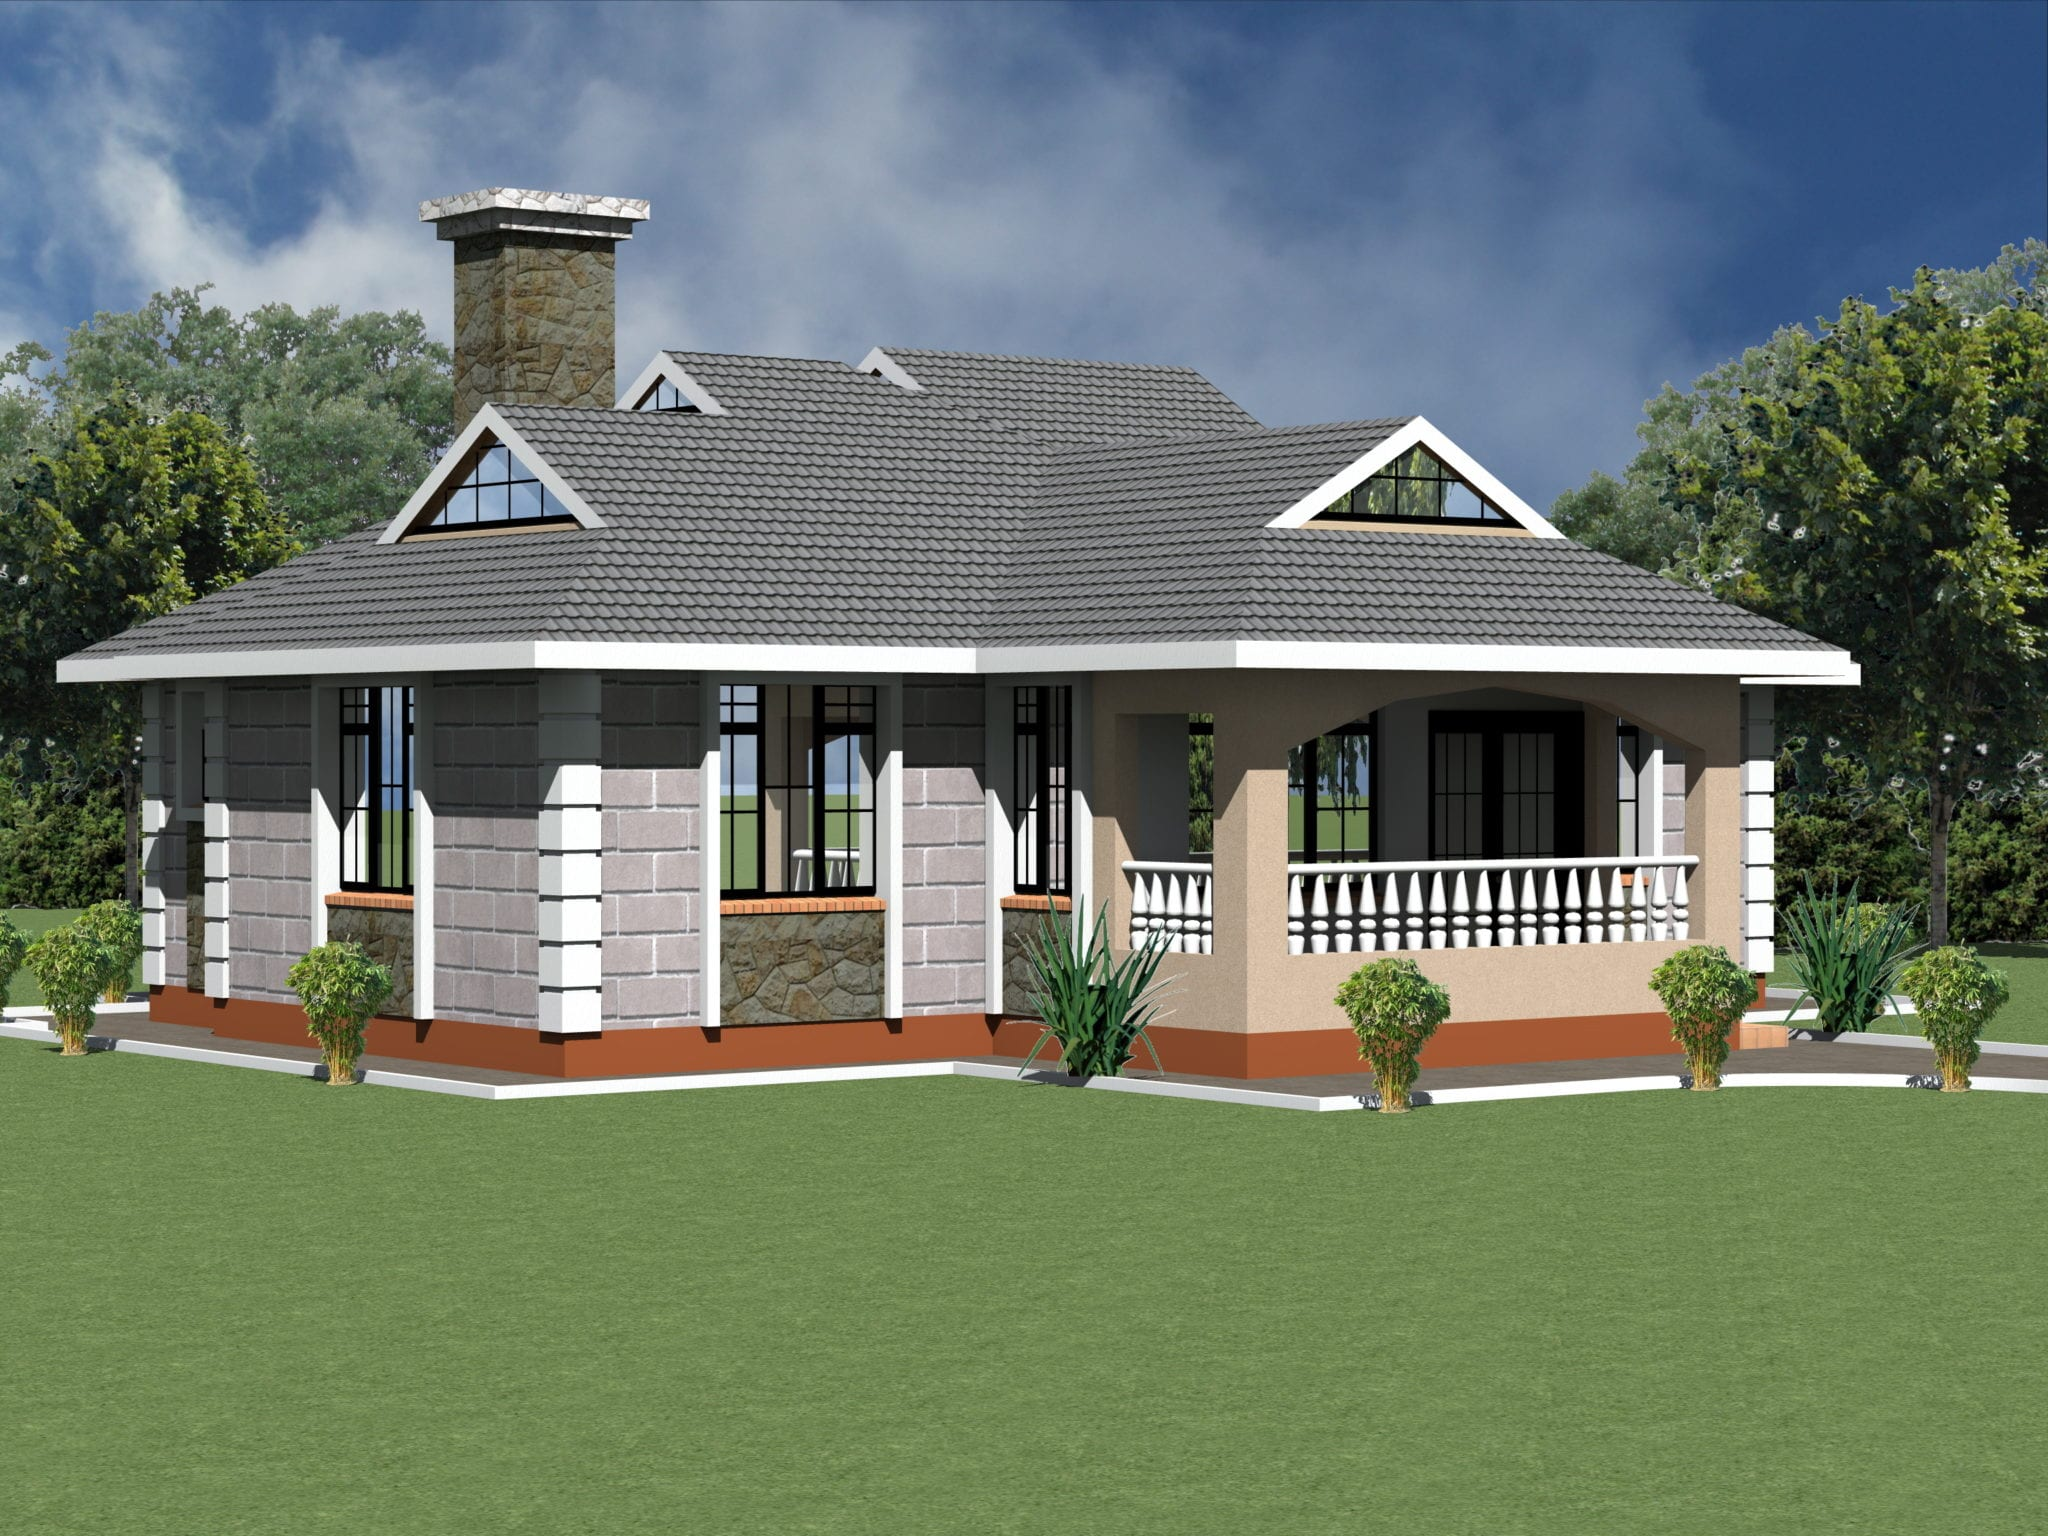 1230 B 30 RENDER 5 - 15+ Low Budget Simple Small Bungalow Modern House Design PNG